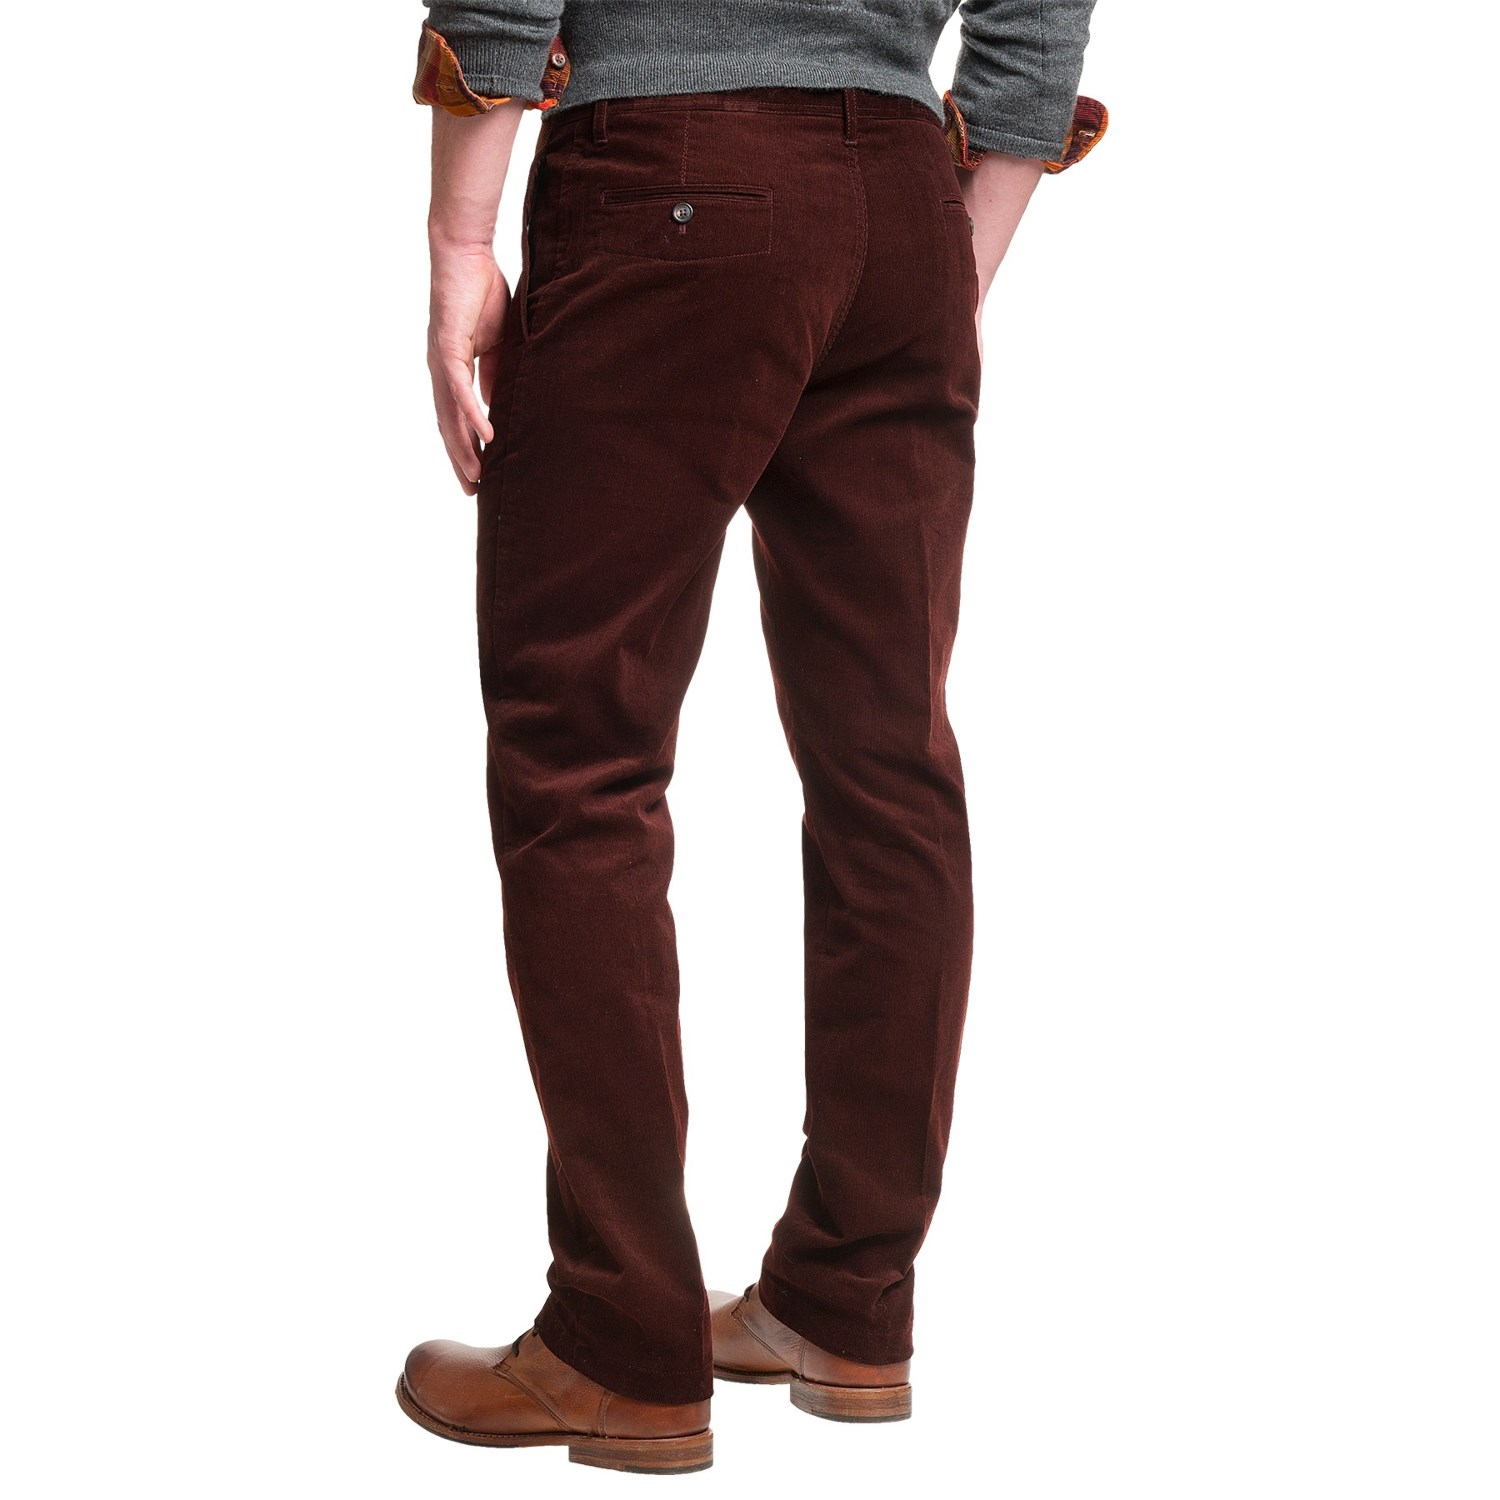 Free shipping BOTH ways on wide wale corduroy pants for men, from our vast selection of styles. Fast delivery, and 24/7/ real-person service with a smile. Click or call